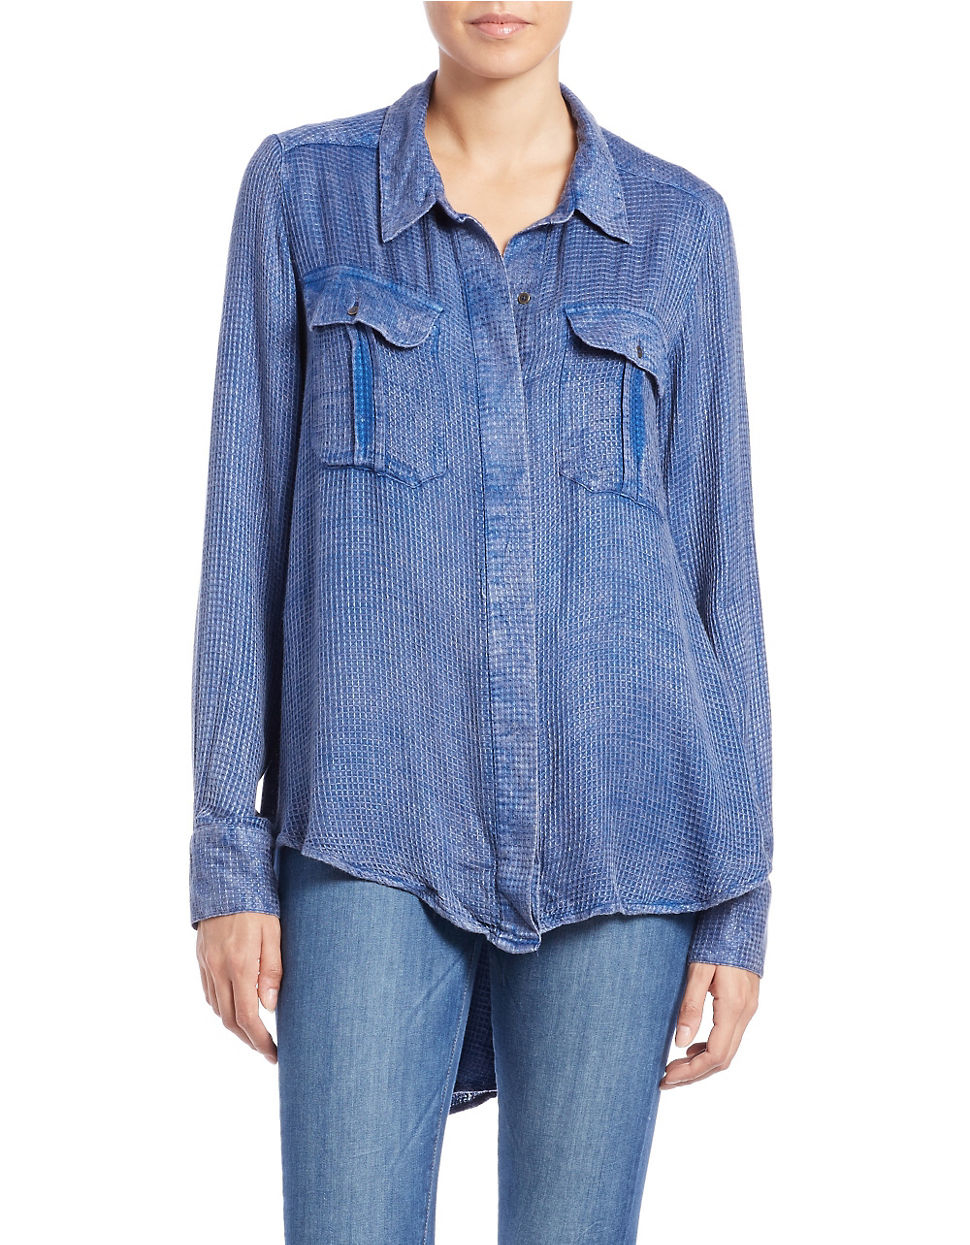 Free people One Of The Guys Button-down Shirt in Blue | Lyst